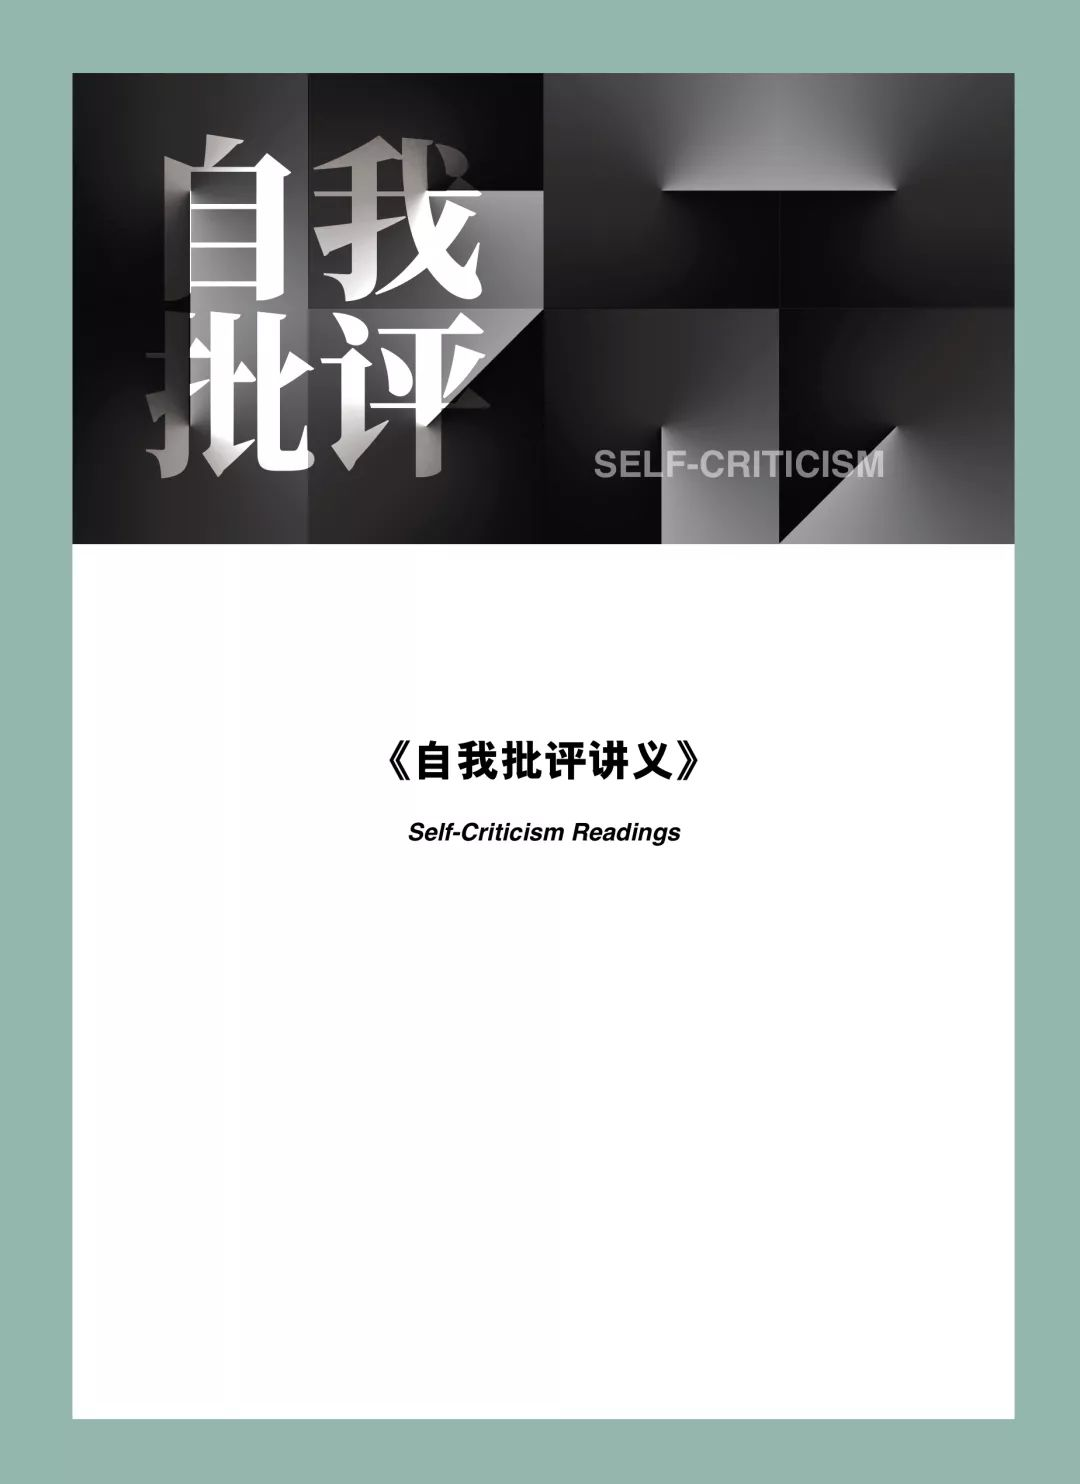 "《自我批评讲义》    卢迎华、罗小茗、苏伟 编     Self-Criticism Readings     Edited by Carol Yinghua Lu, Luo Xiaoming and Su Wei   ""自我批评""这个词时常带有消极指向。在当今频繁发生恐怖袭击、战争的状态下,我们时常处于警戒状态,而仅仅拥有批判性的视角已不足以与实际行动的力量抗衡,自我批评作为实践的过程,需要我们培养和训练。在此理念下,本书选入五篇各领域的文章,讨论这个时代中""自我批评""的必要性。本书也是2017年同名展览的出版物。  This is a readings of the exhibition  Self-Criticism  (2017.5.27-2017.9.17) held at IOAM. The exhibition brings together artists, curators, and cultural critics, acting concurrently as team, and concerning themselves with the implications of the proposed question, rather than merely explaining around the topic of self-criticism. 5 texts from different historical periods are selected in the book, enlightening the necessity of self-criticism in our time."